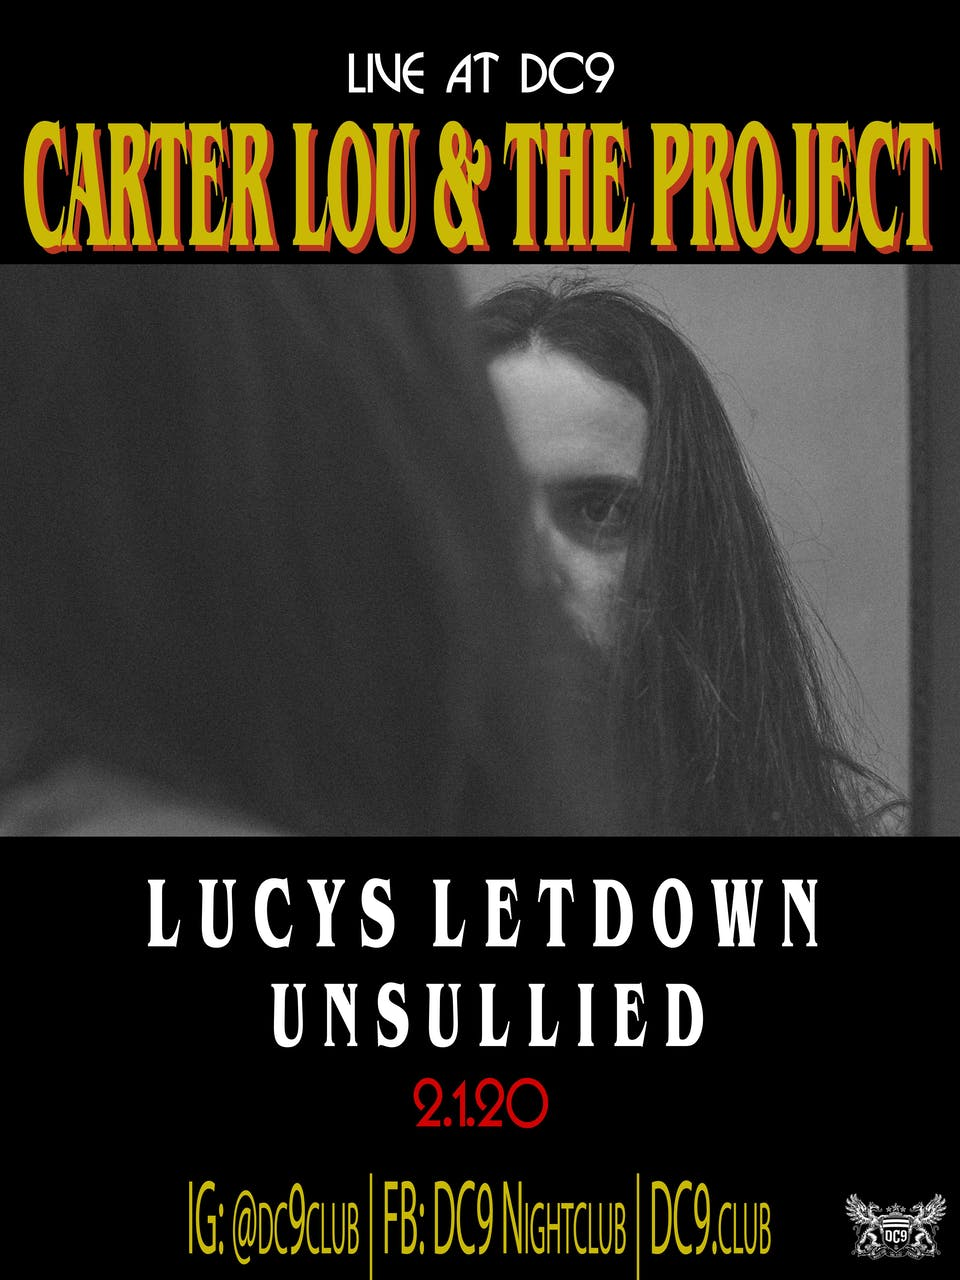 Carter Lou & The Project